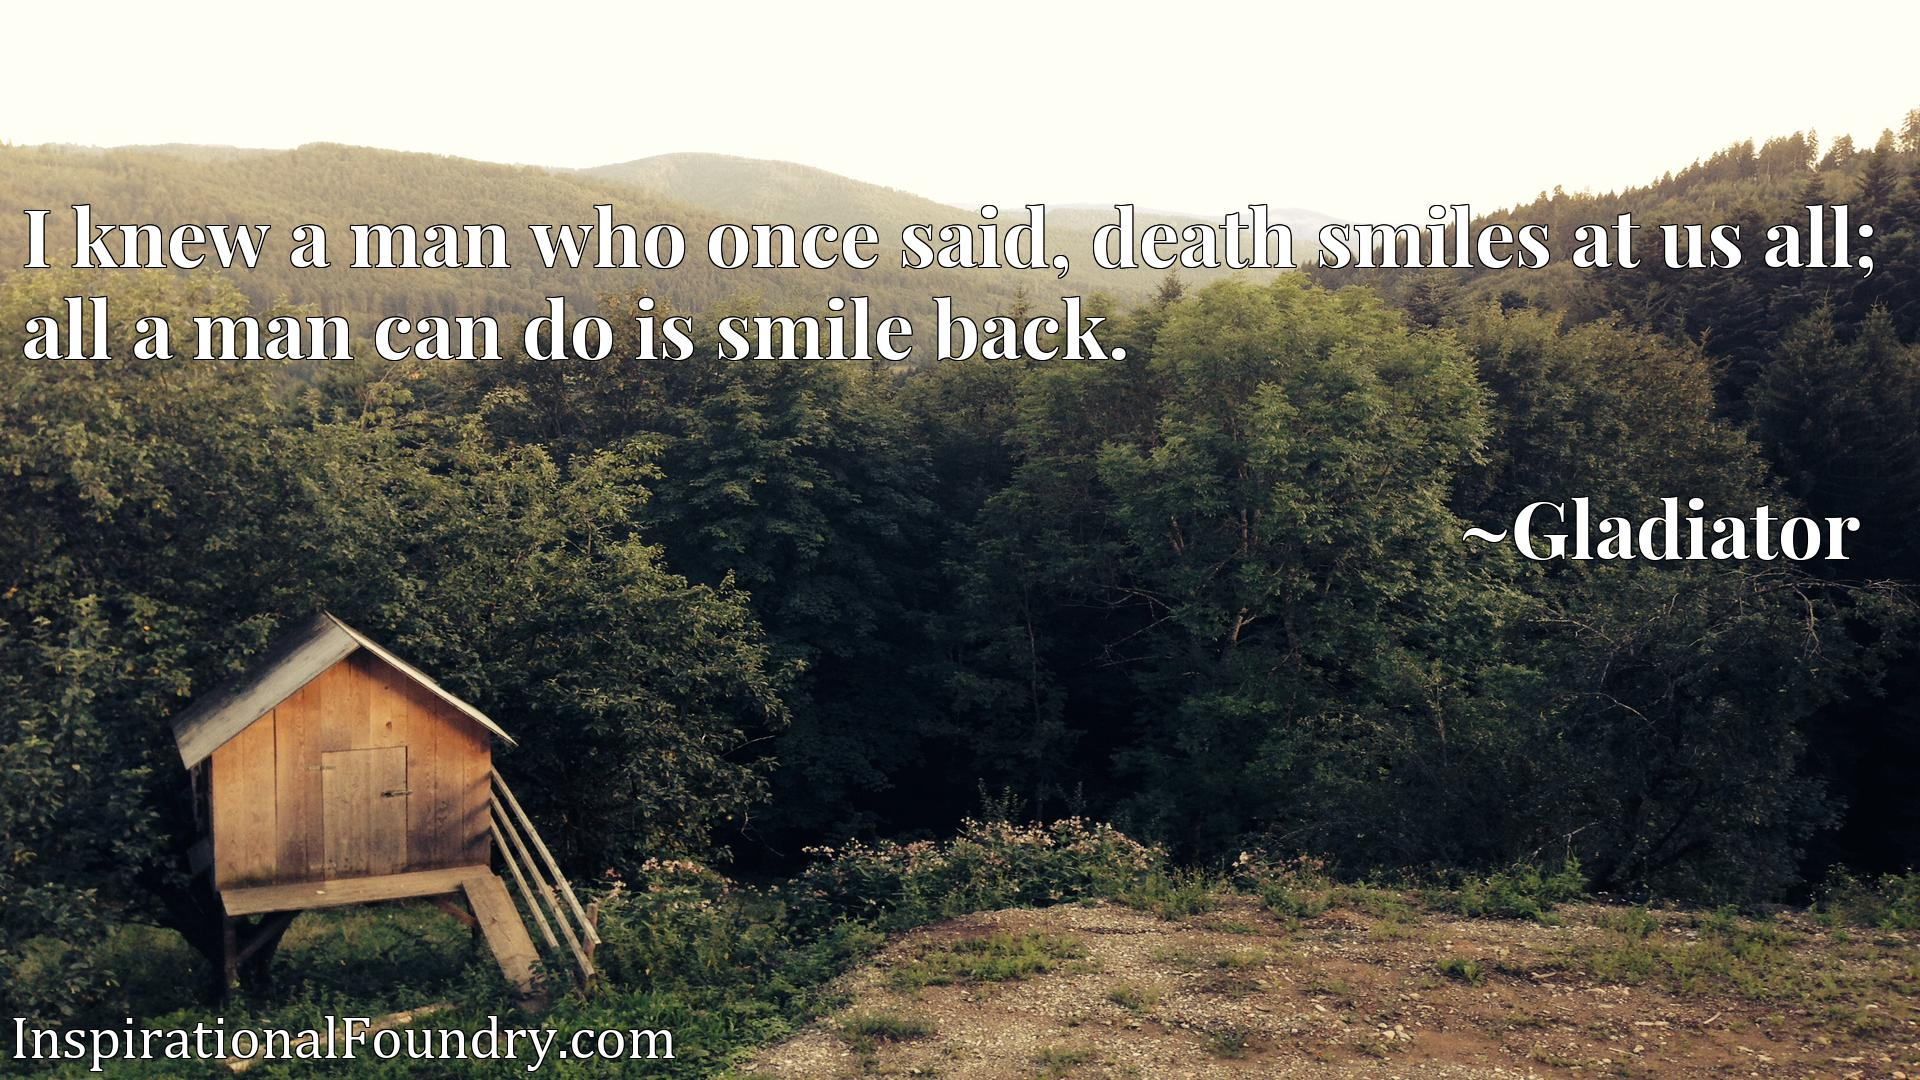 I knew a man who once said, death smiles at us all; all a man can do is smile back.